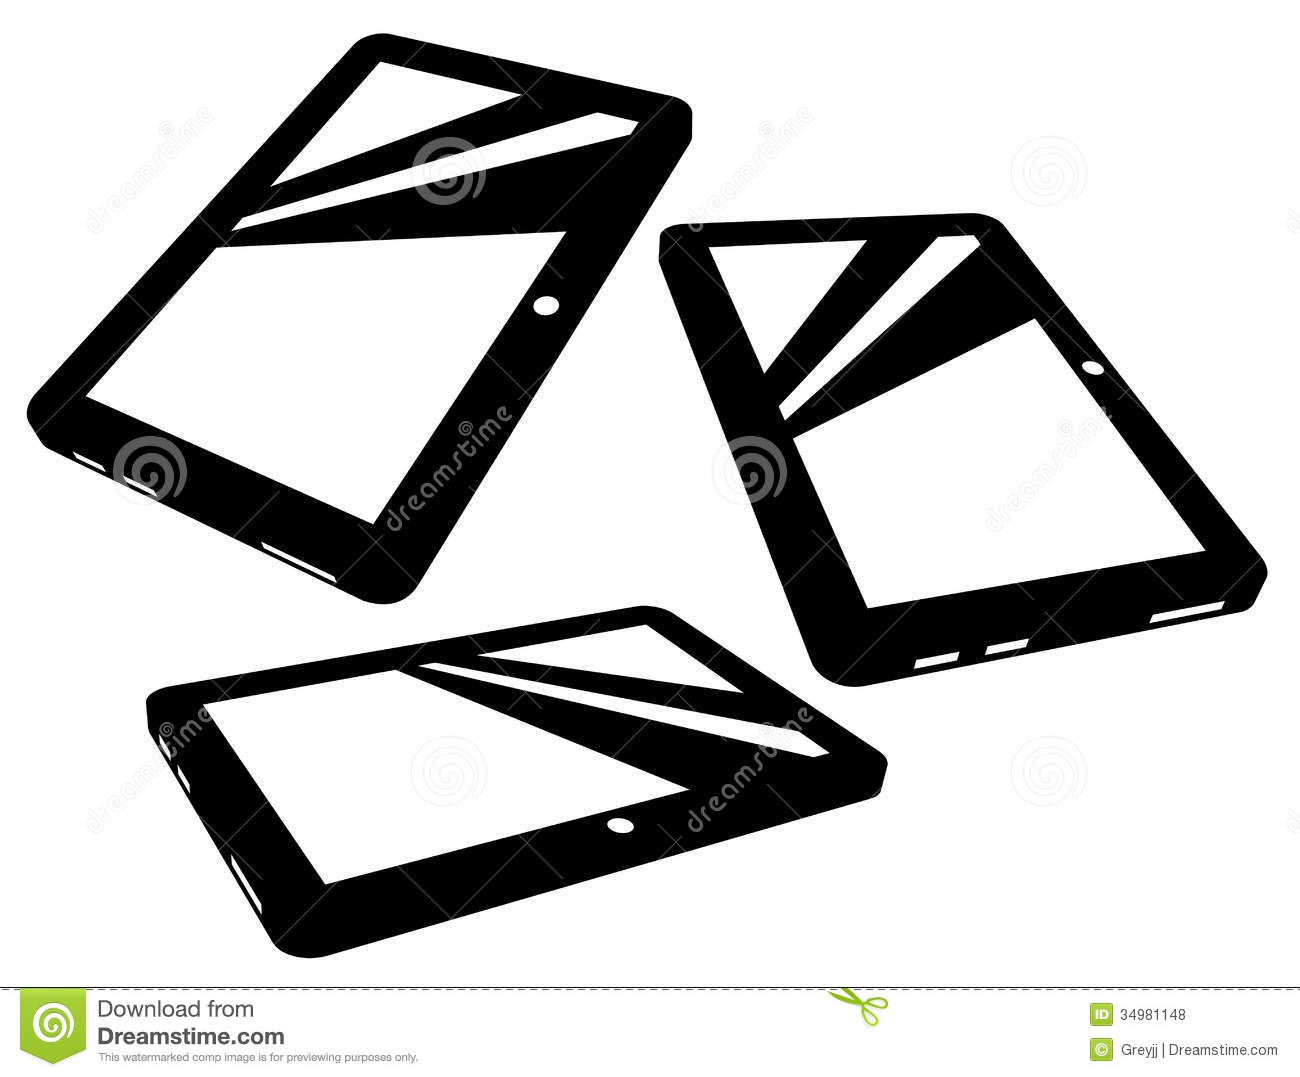 Vector Tablet Silhouettes Royalty Free Stock Photos ...